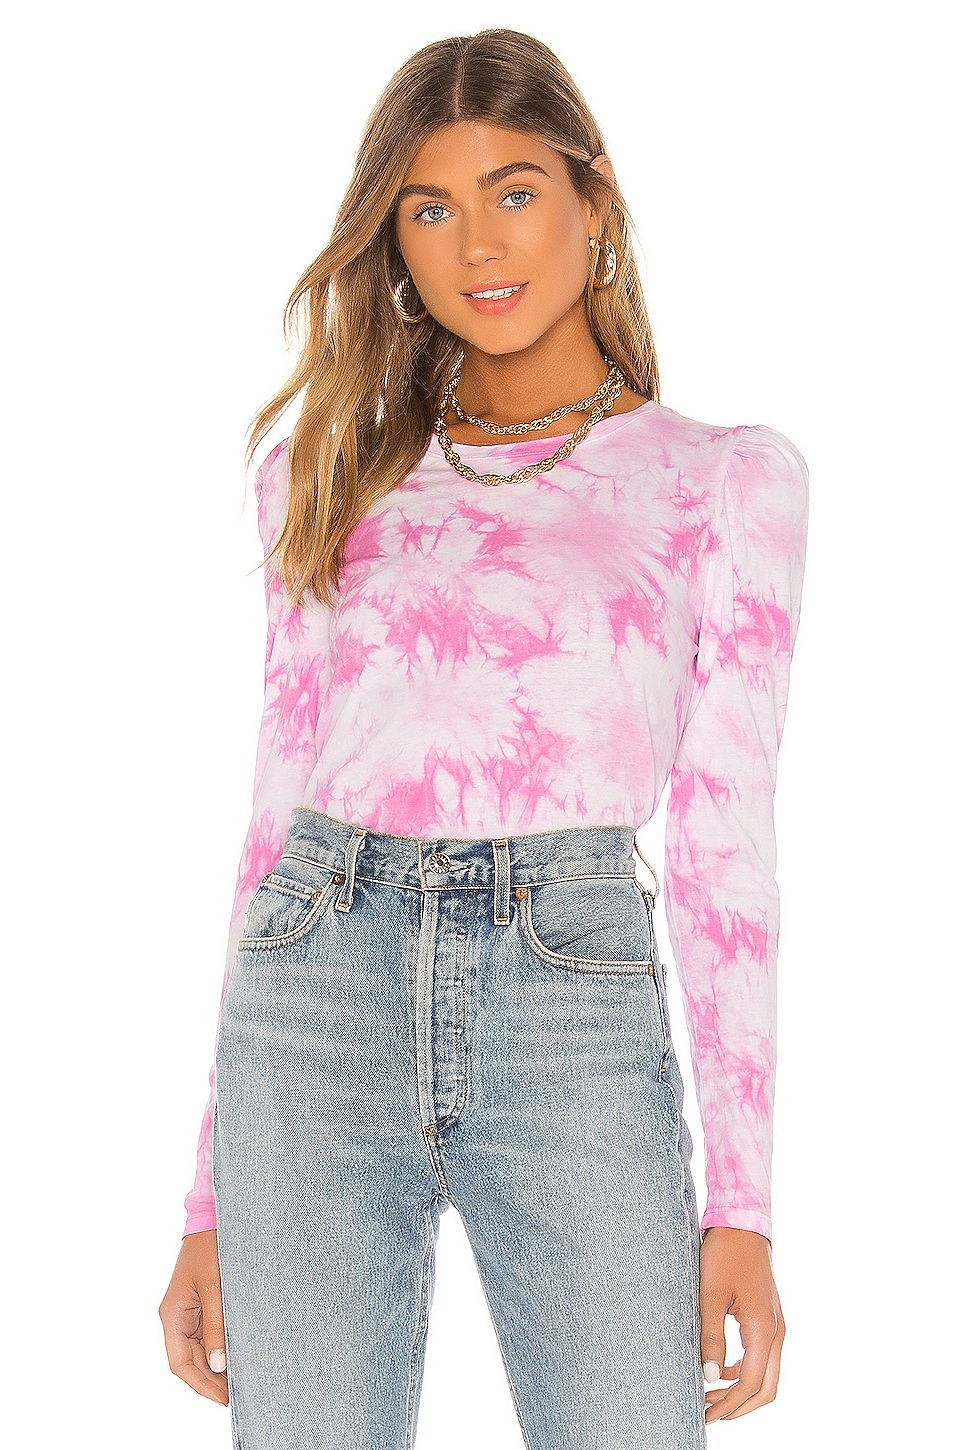 Generation Love Josephine Top in Pink & White, #ad, #Ad, #Josephine, #White, #Pink, #Love